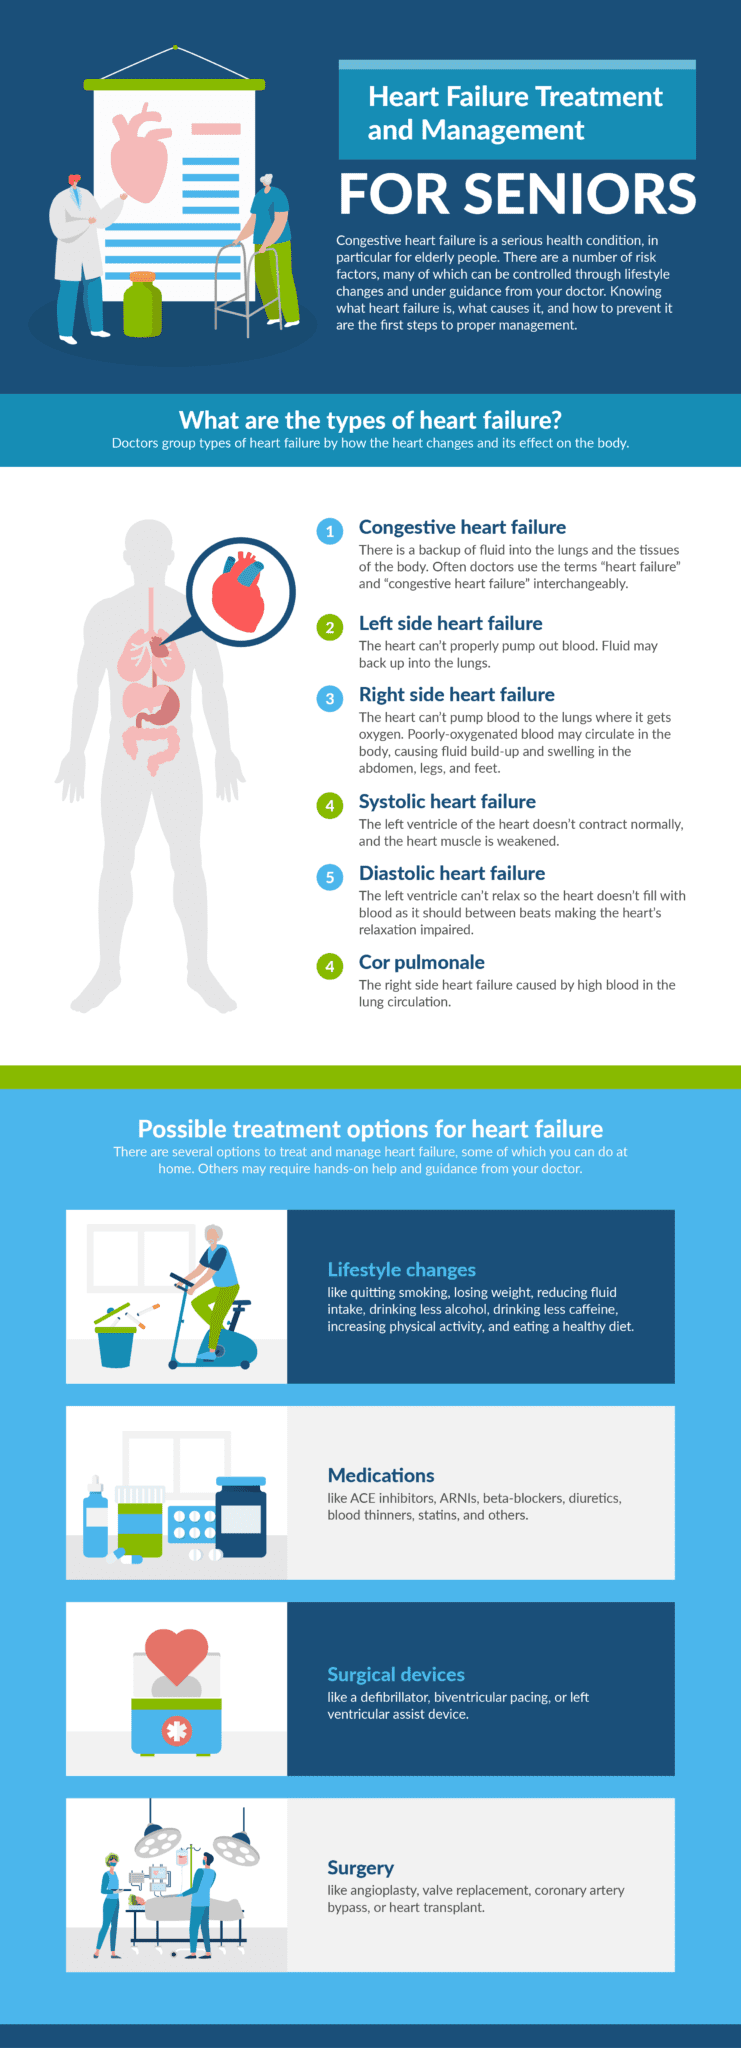 heart failure treatment and management for seniors infographic